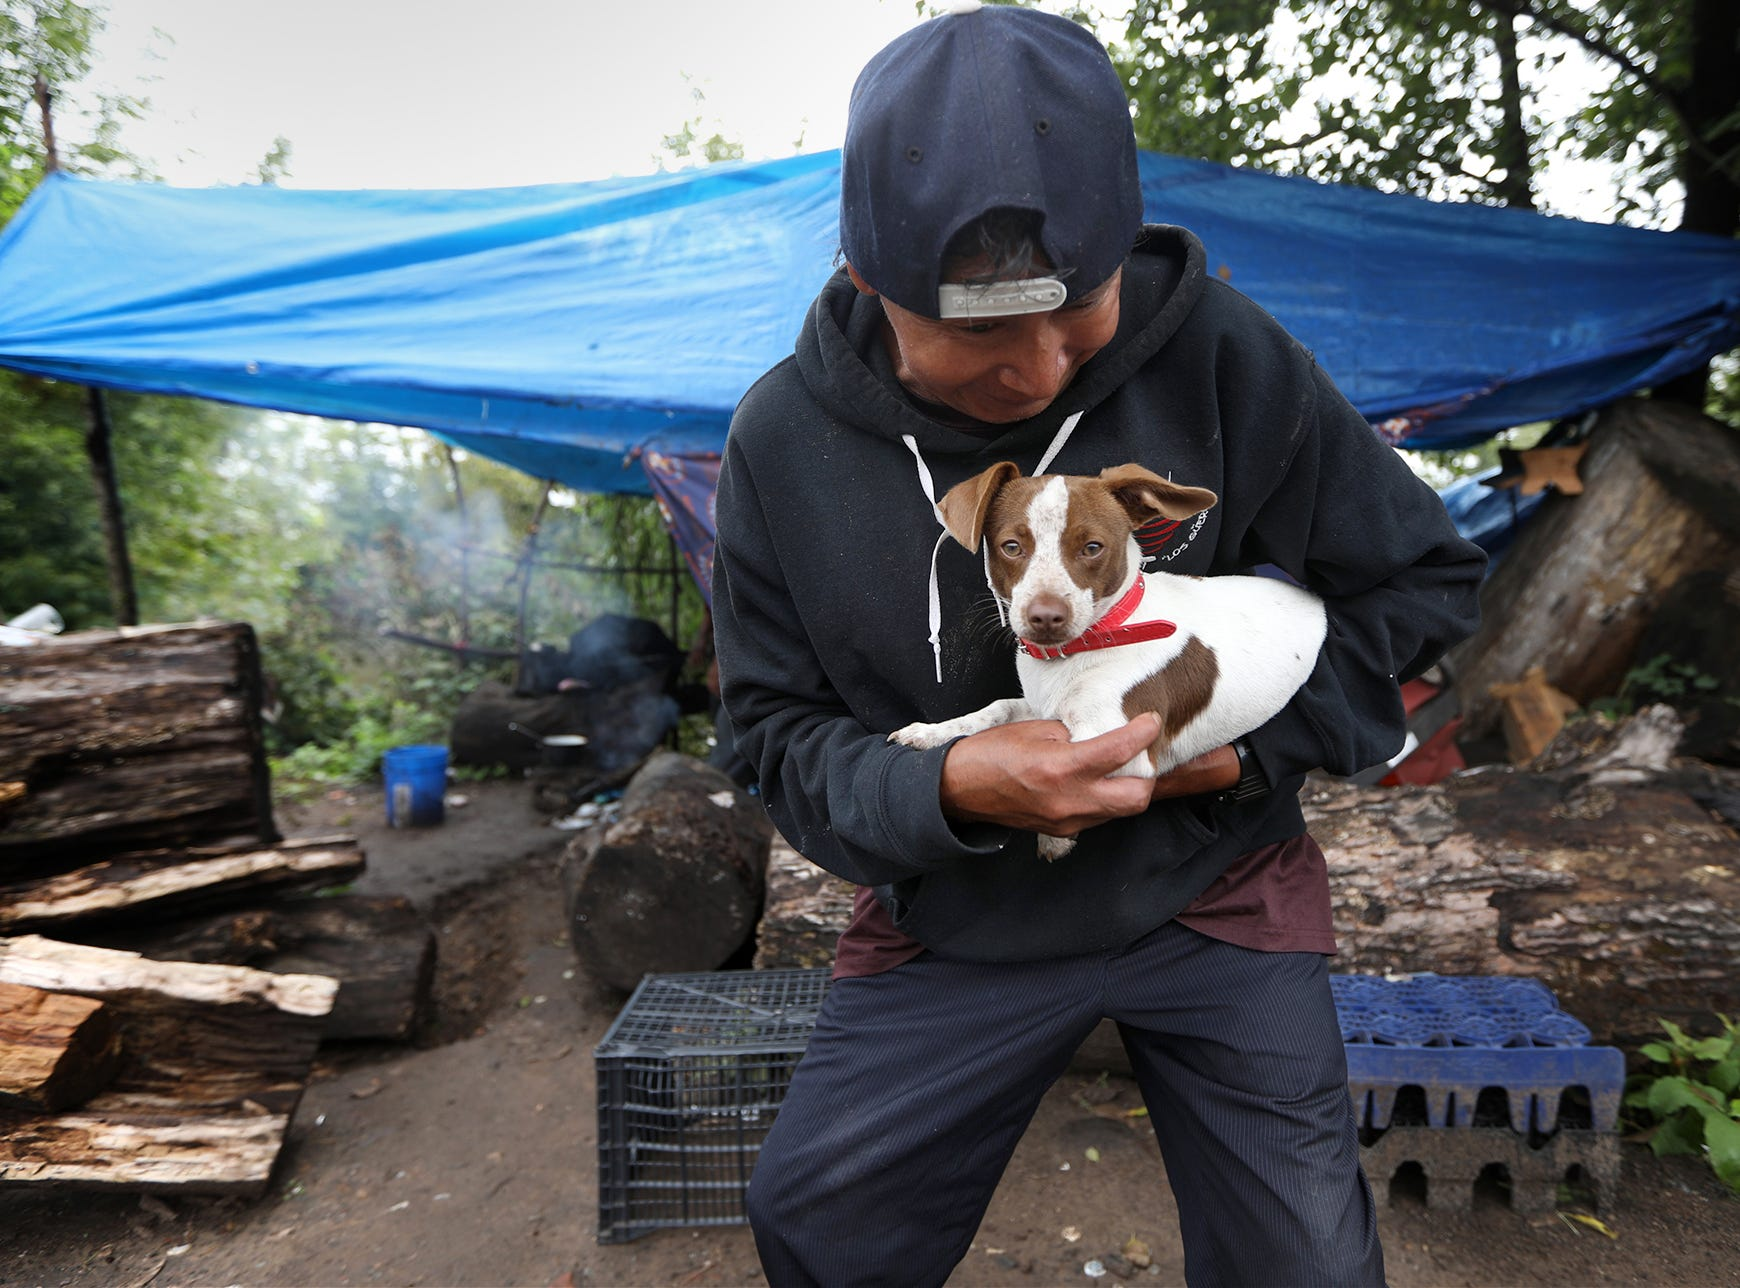 Bebe is held by Salvador Rodriguez at a homeless encampment along the Passaic River in Passaic.  Bebe lives alongside dozens of men in the area. Wednesday, September 26, 2018